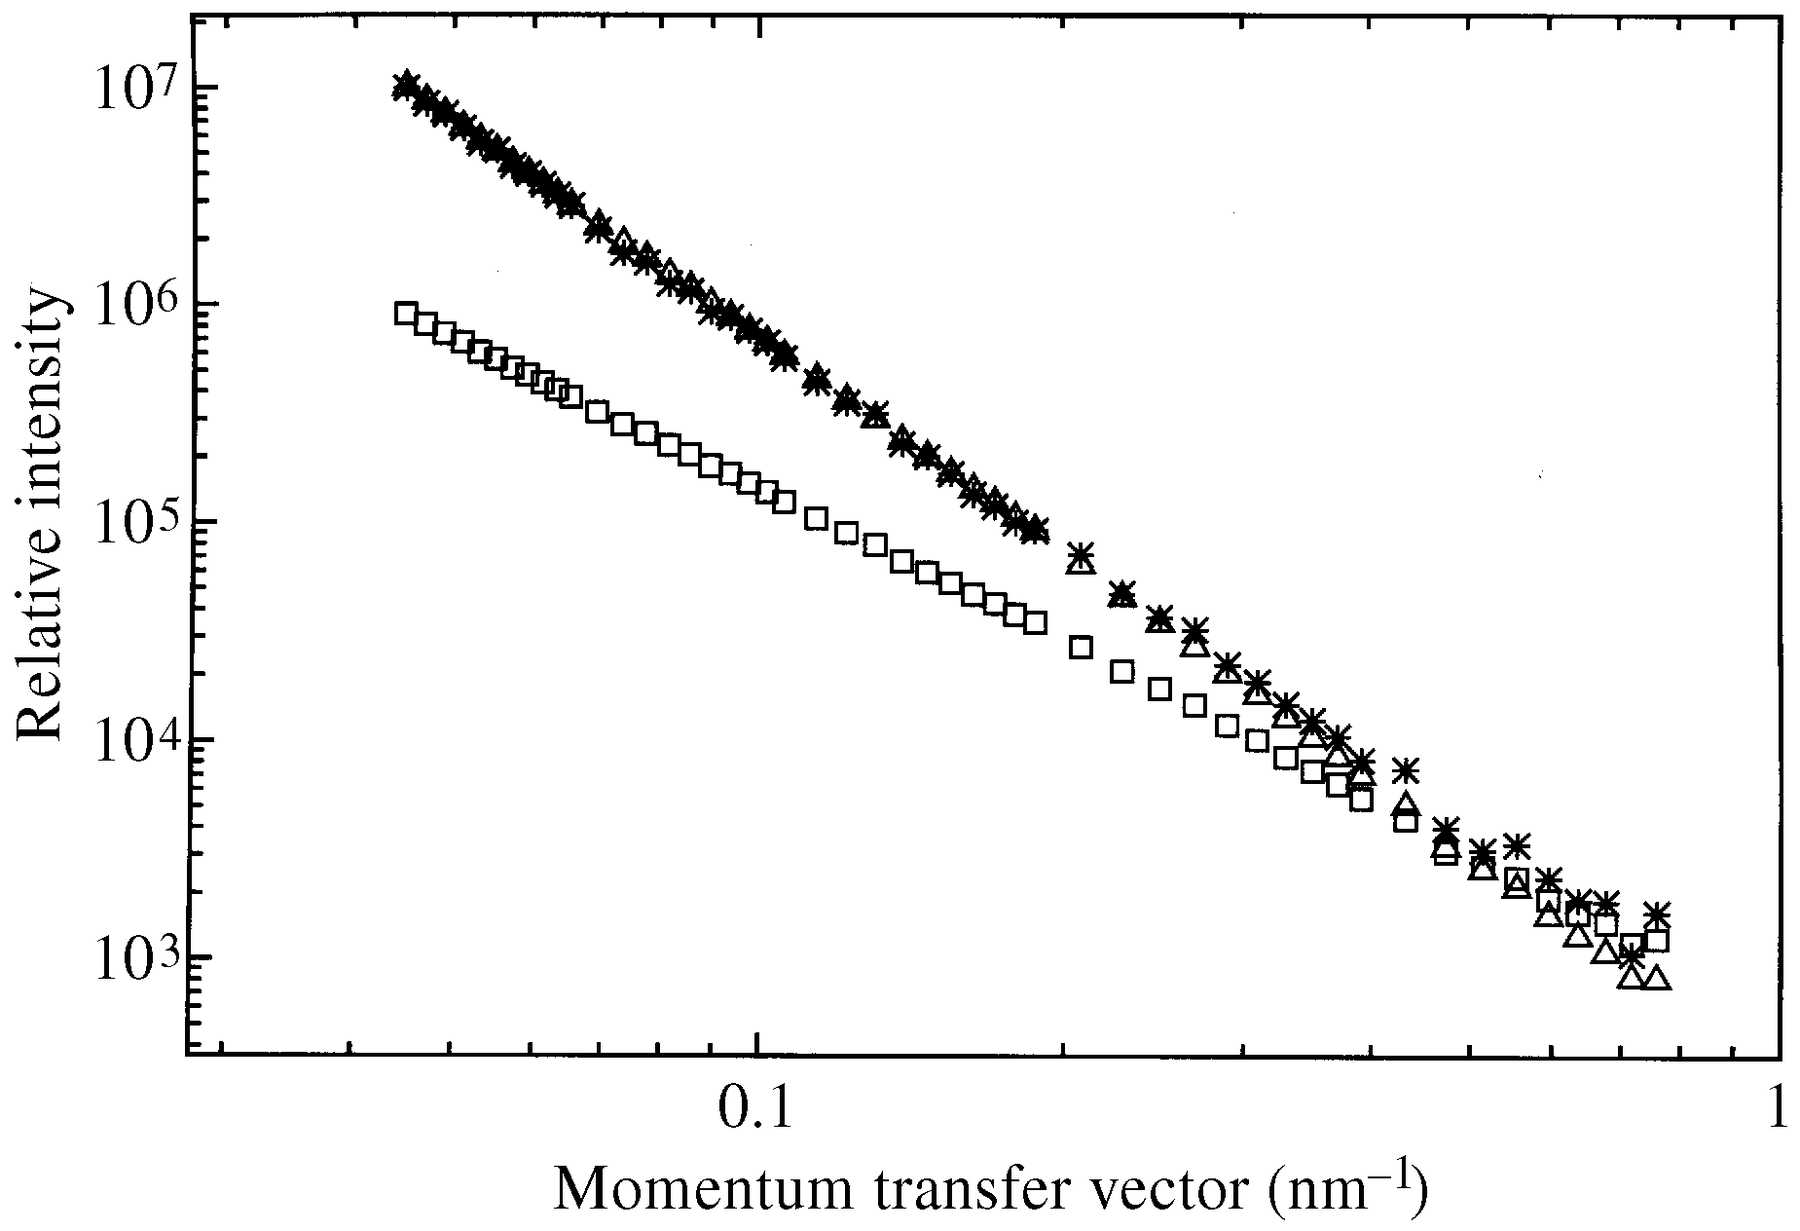 iucr derivation of infinite slit smeared small angle scattering